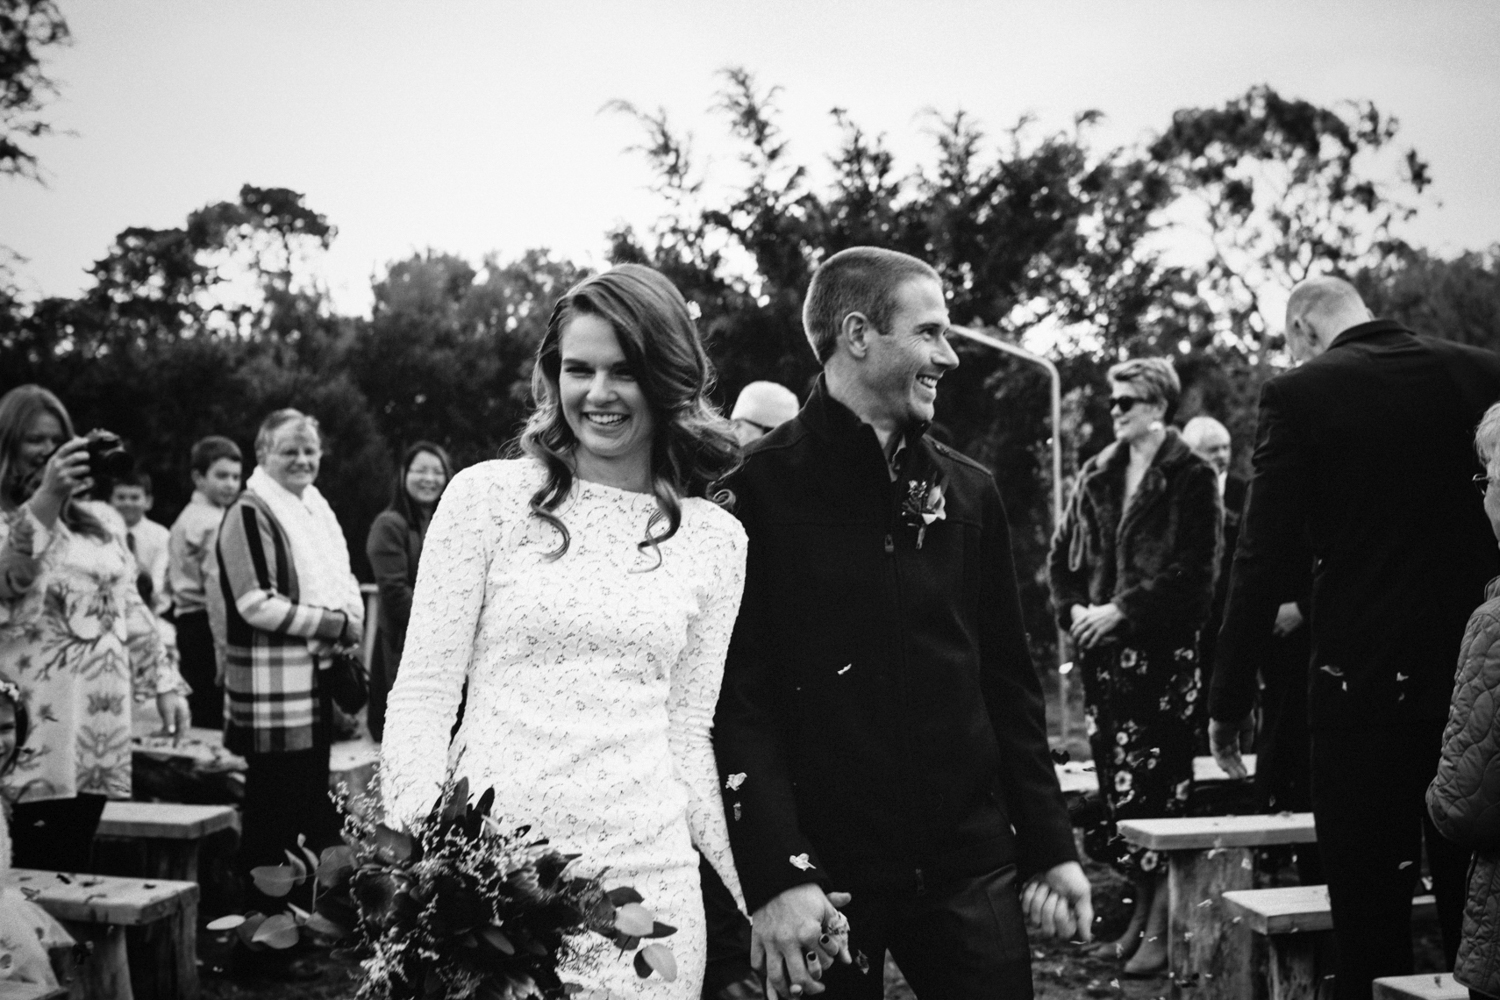 married couple smile through confetti after their wedding ceremony in tasmania.